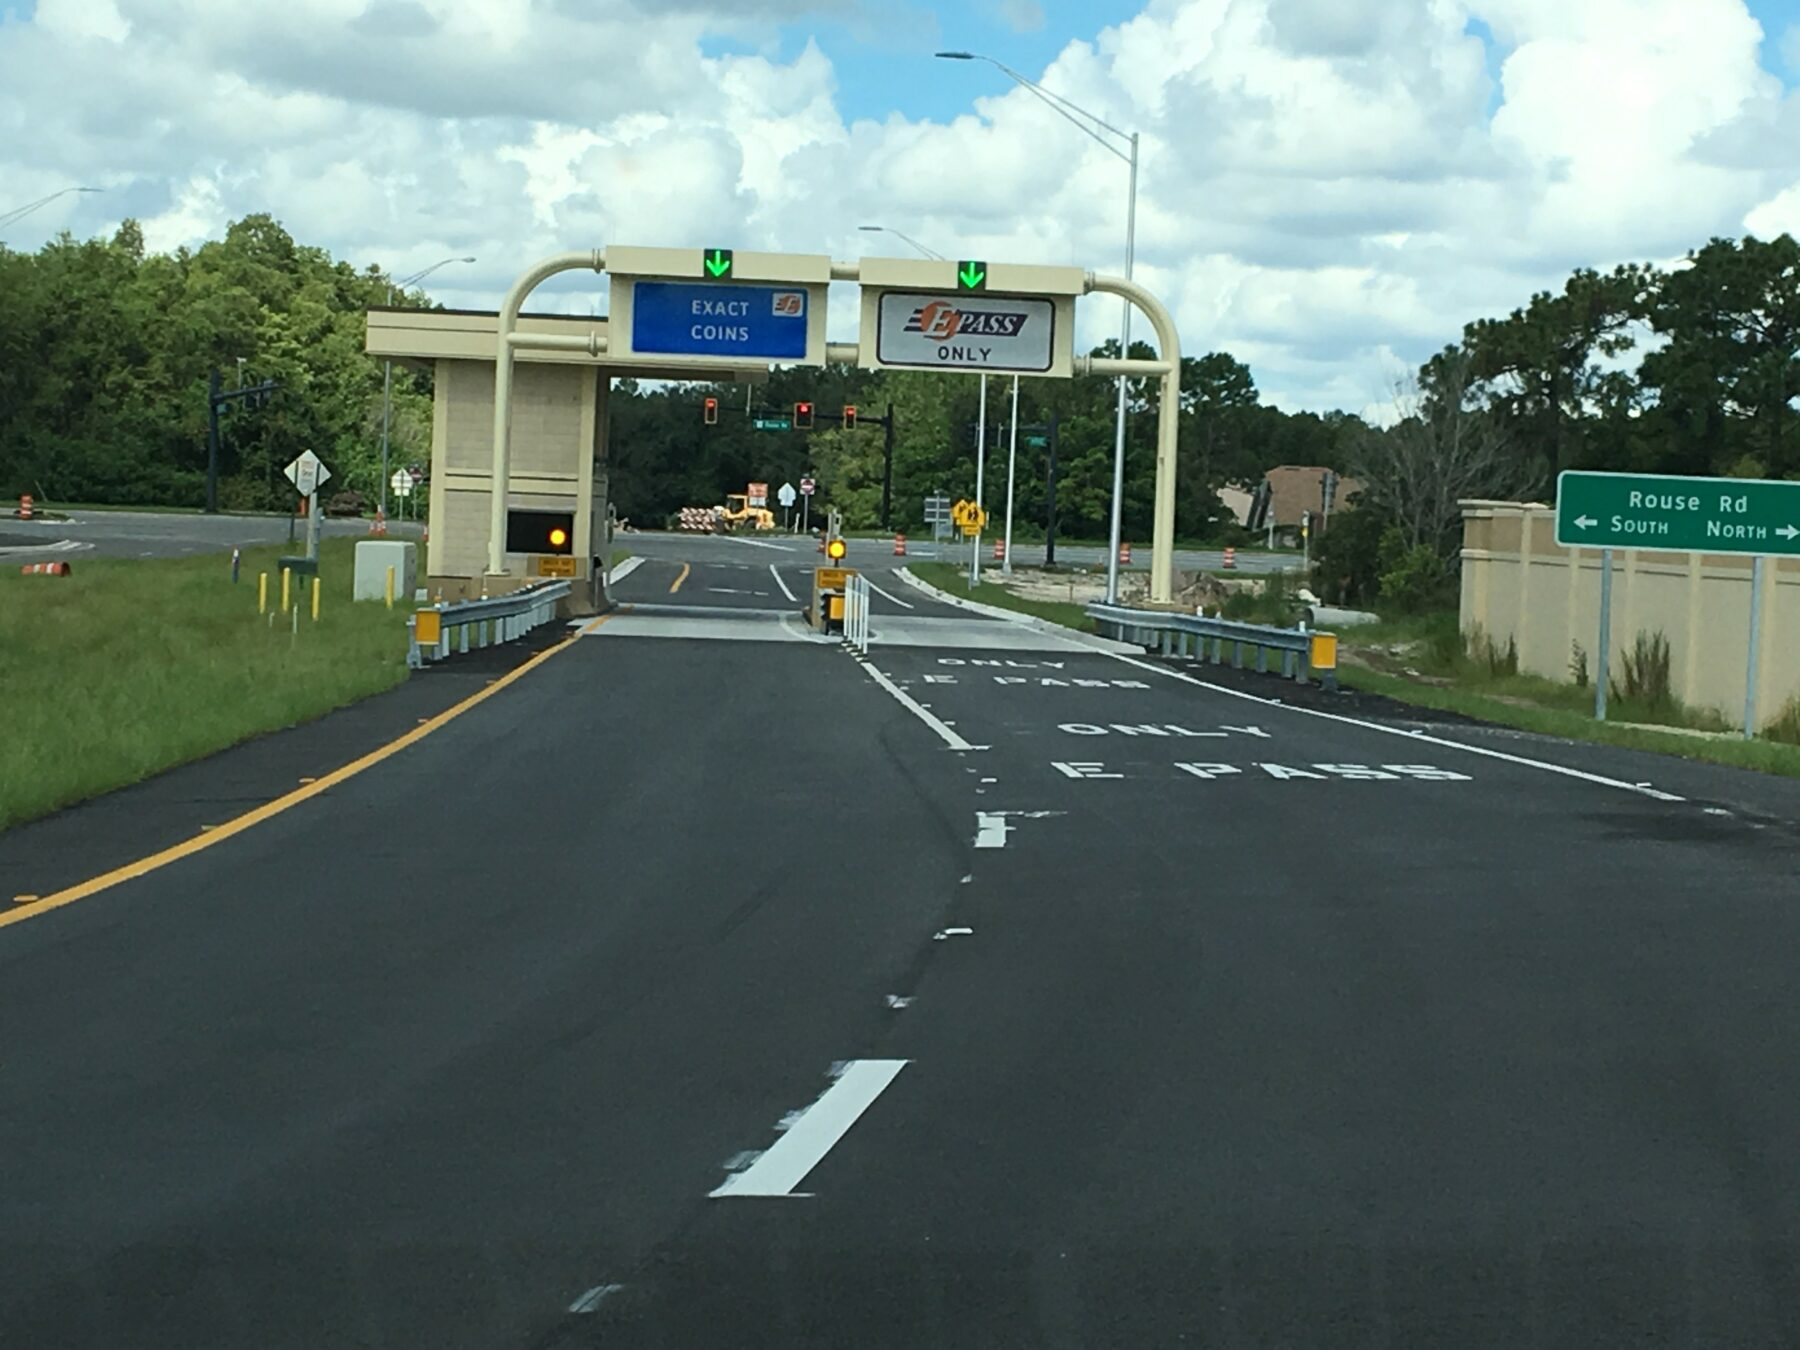 State Road 408 exit ramp toll plaza at Rouse Road